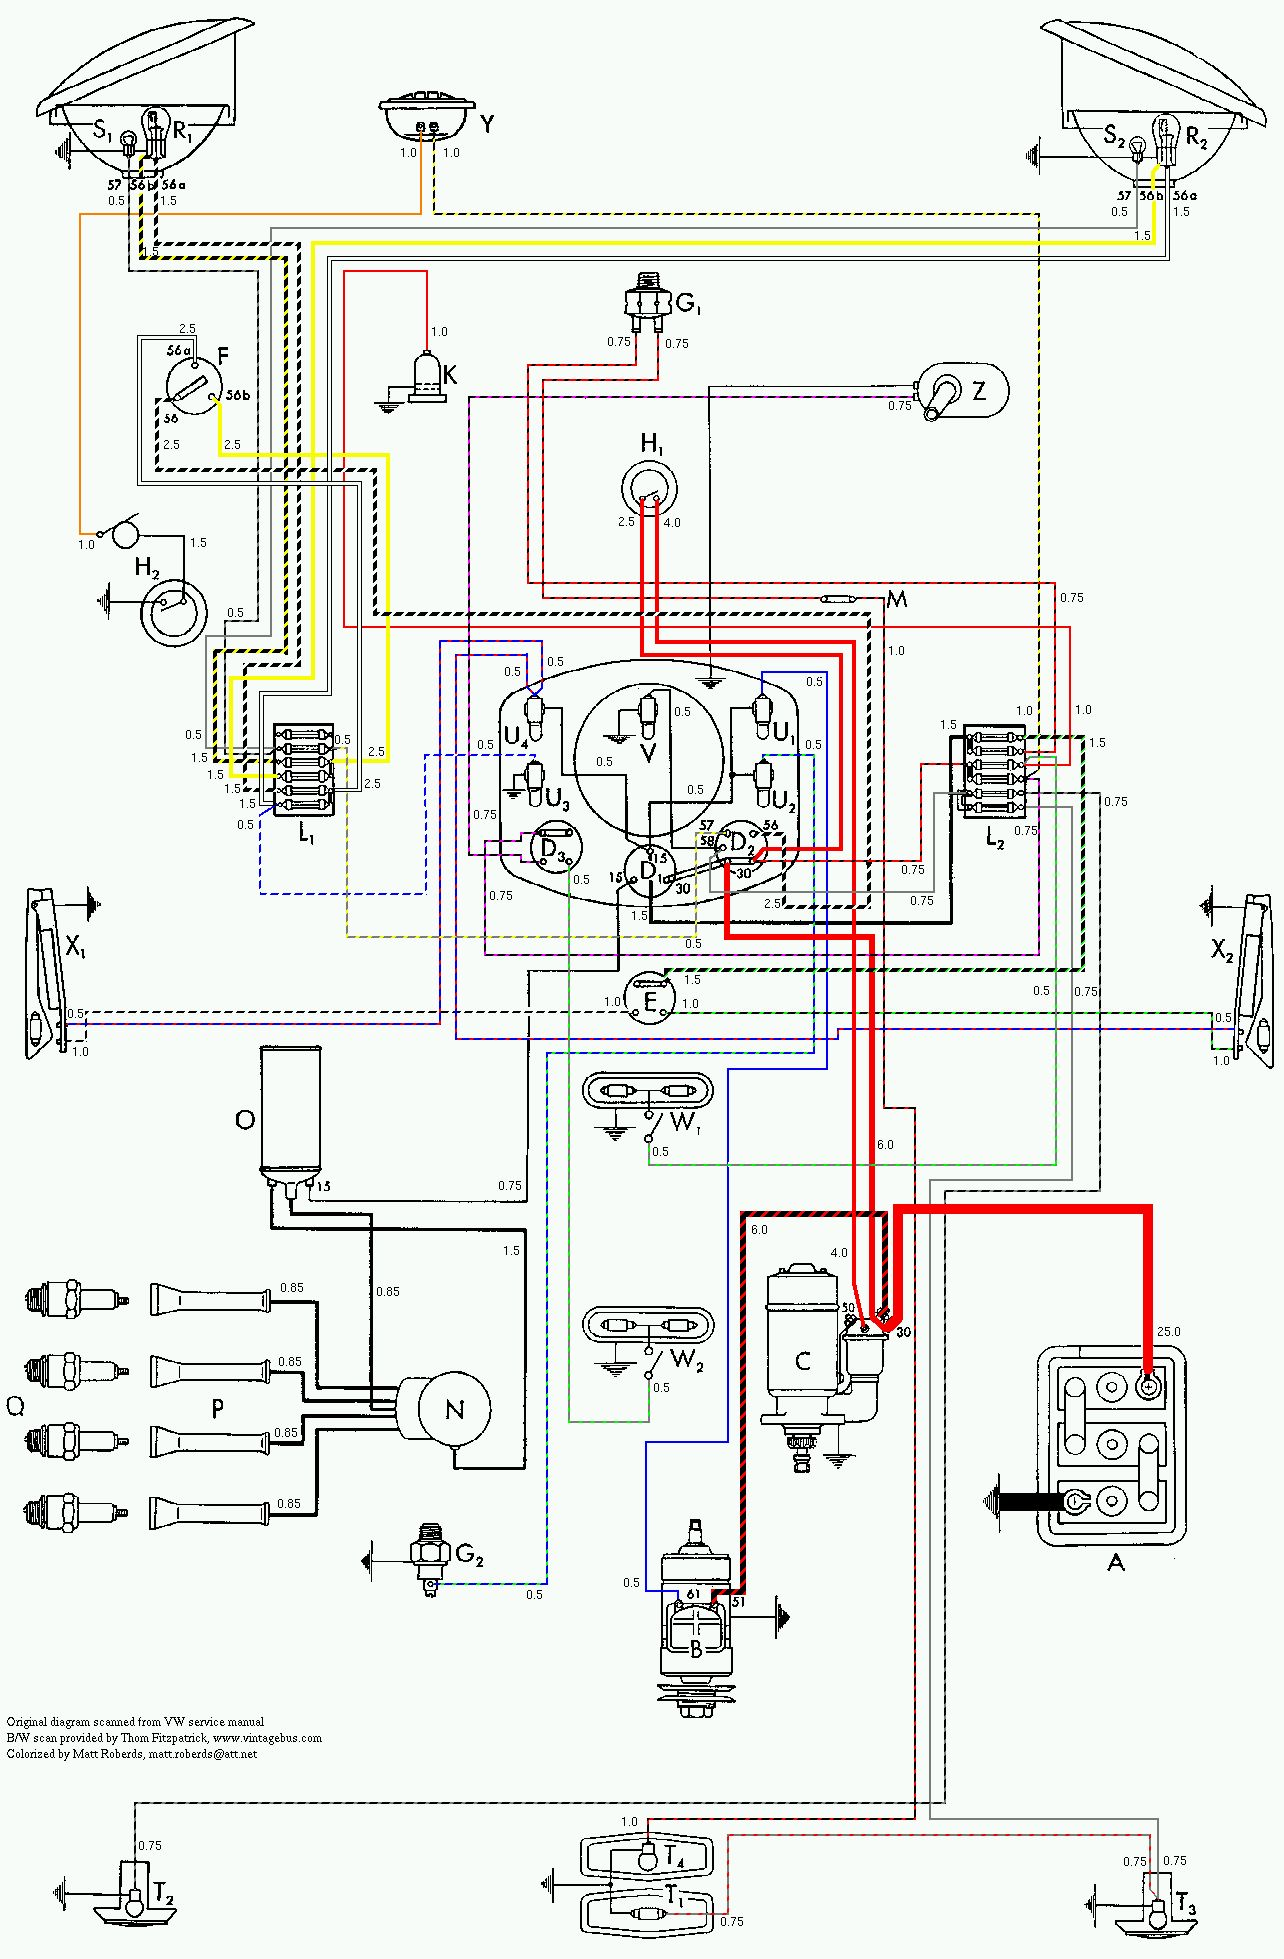 vintagebus com vw bus and other wiring diagrams rh vintagebus com Vanagon Engine Diagram Fly Diagram